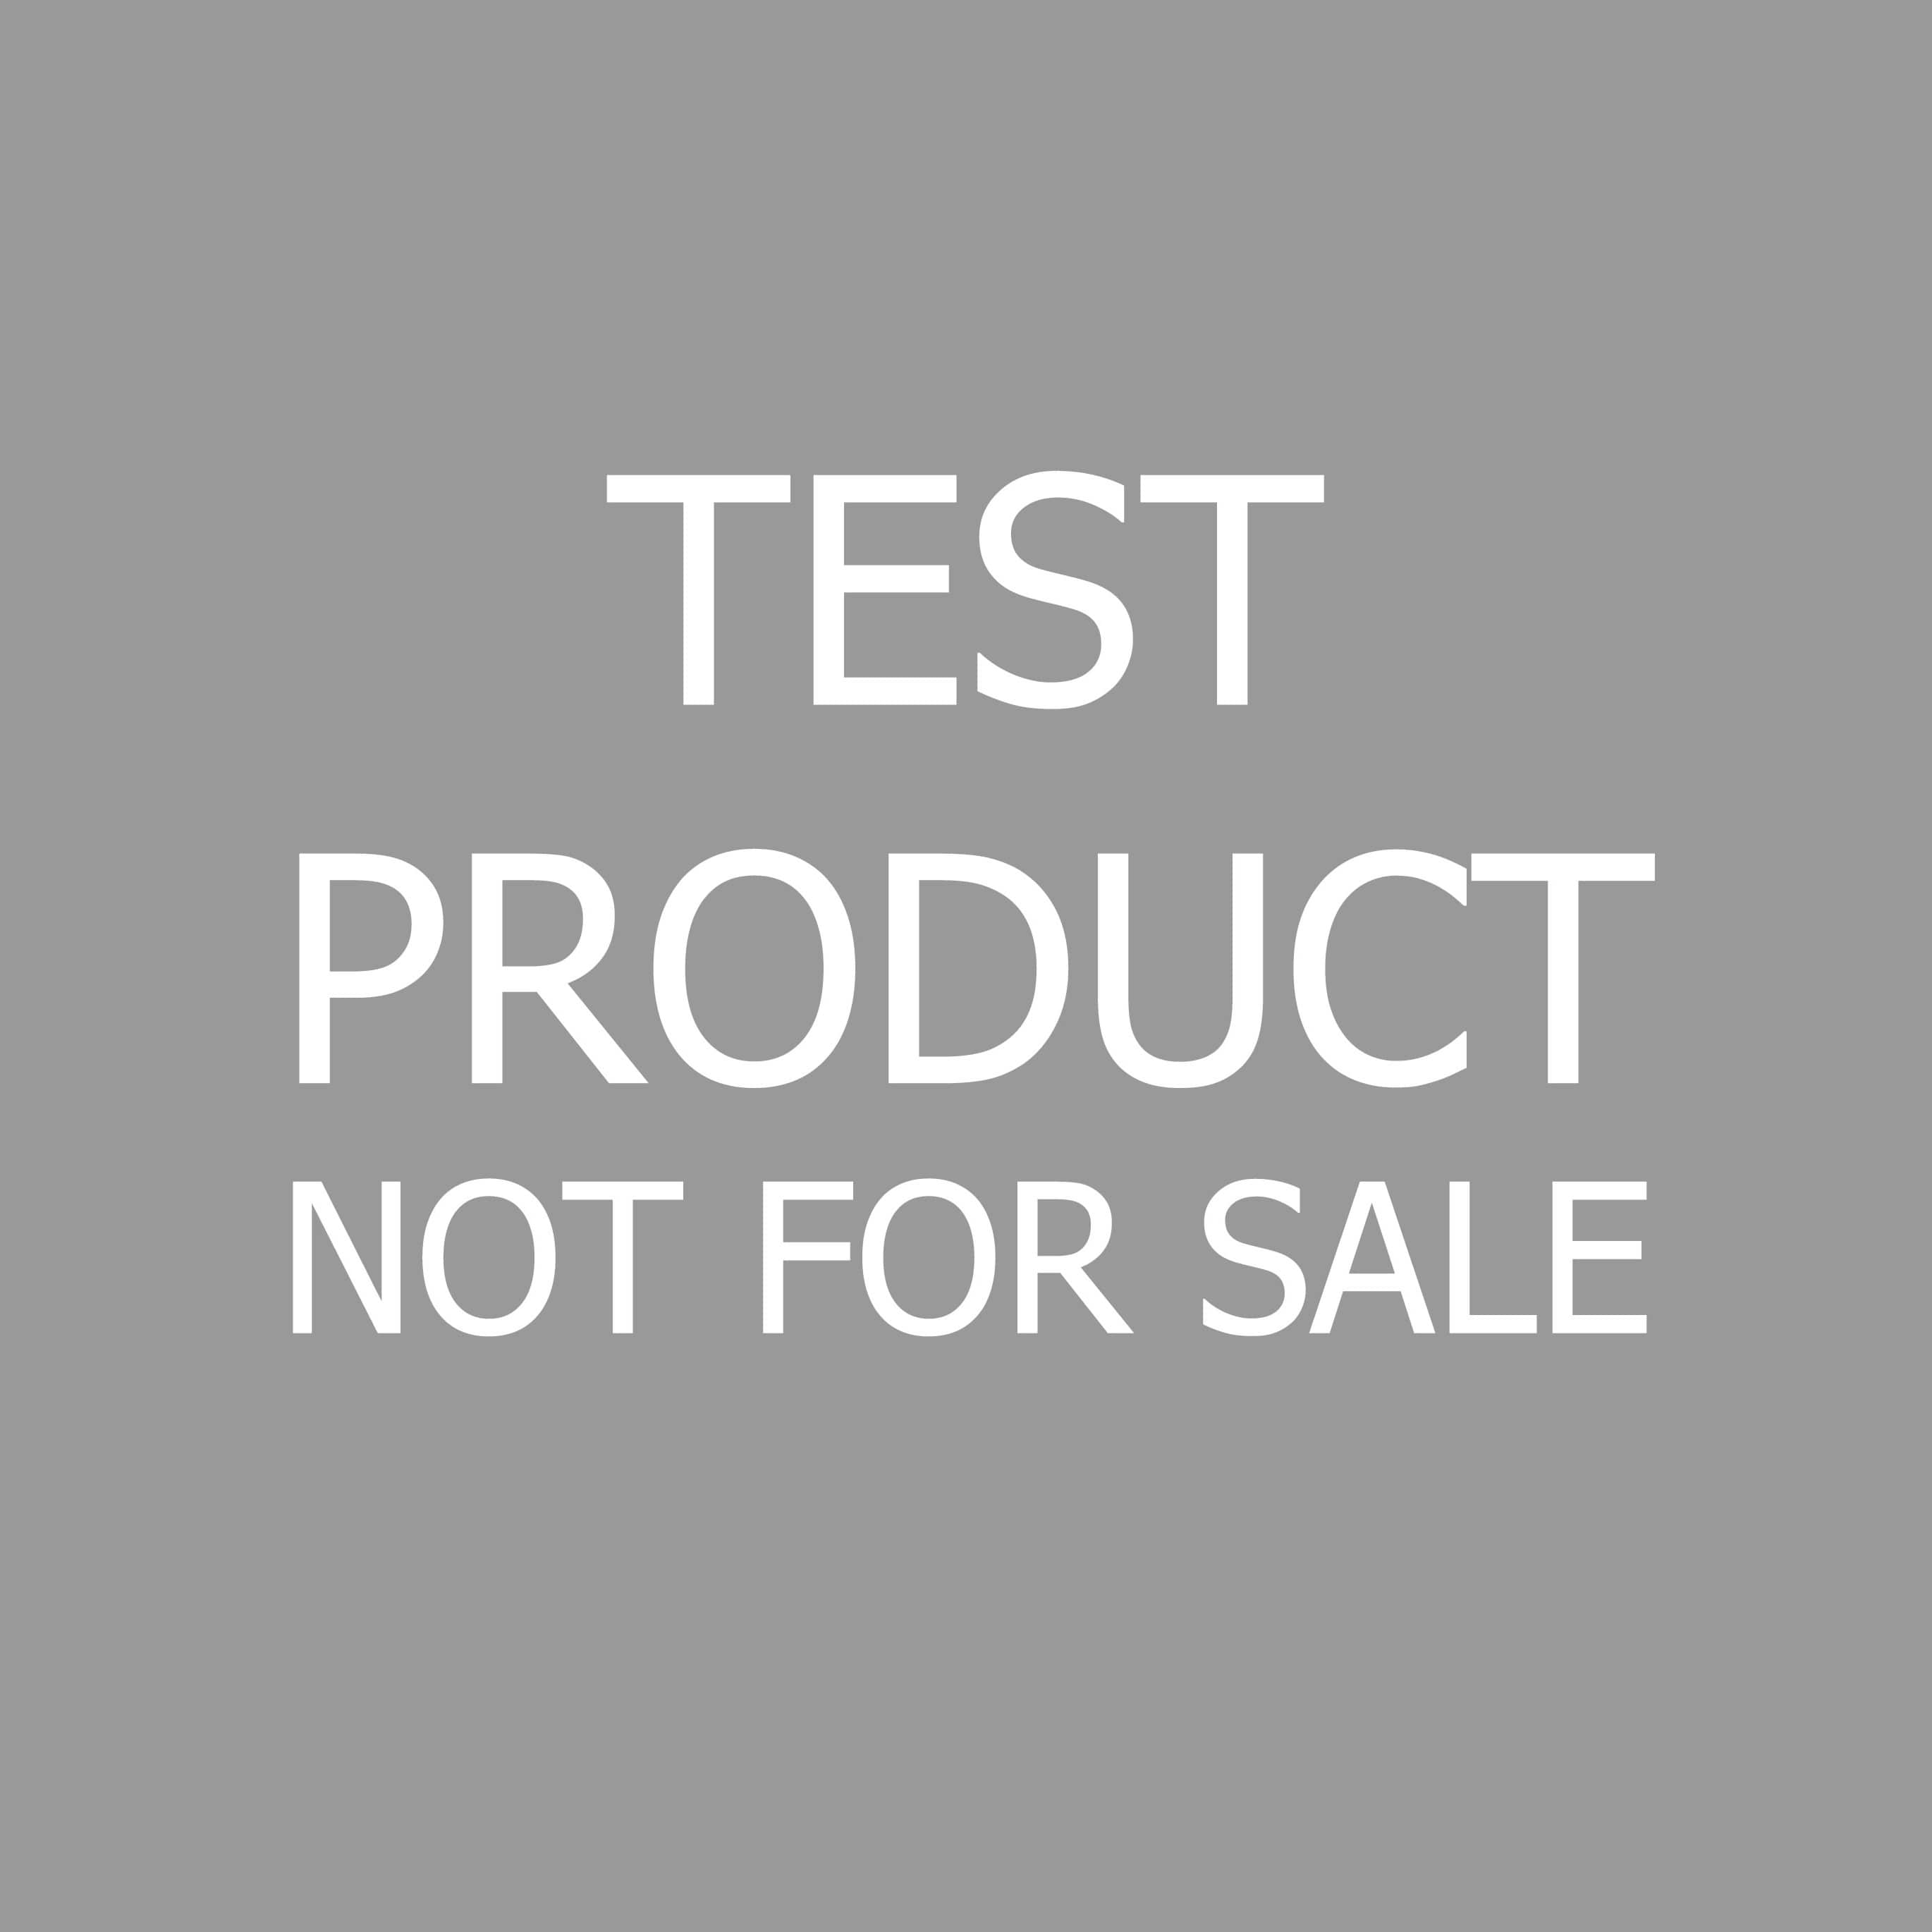 test-product-not-for-sale